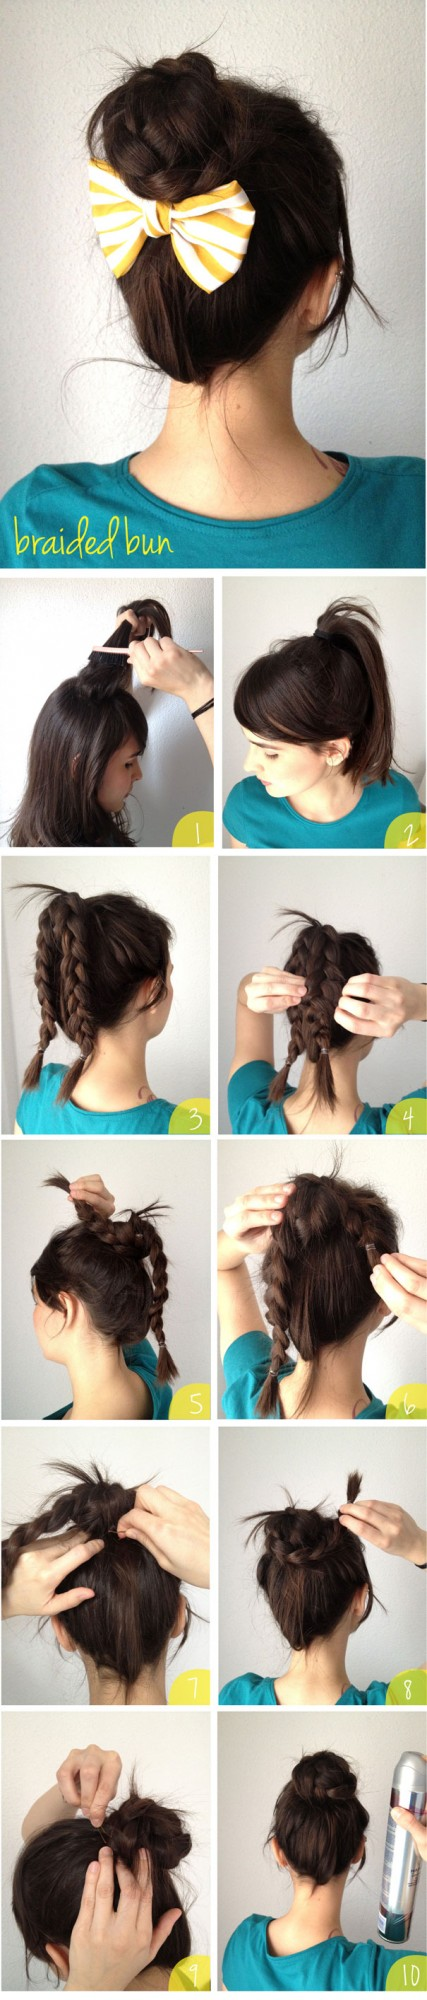 19 Cute and Easy Hairstyles that Can Be Done in 10 Minutes (6)